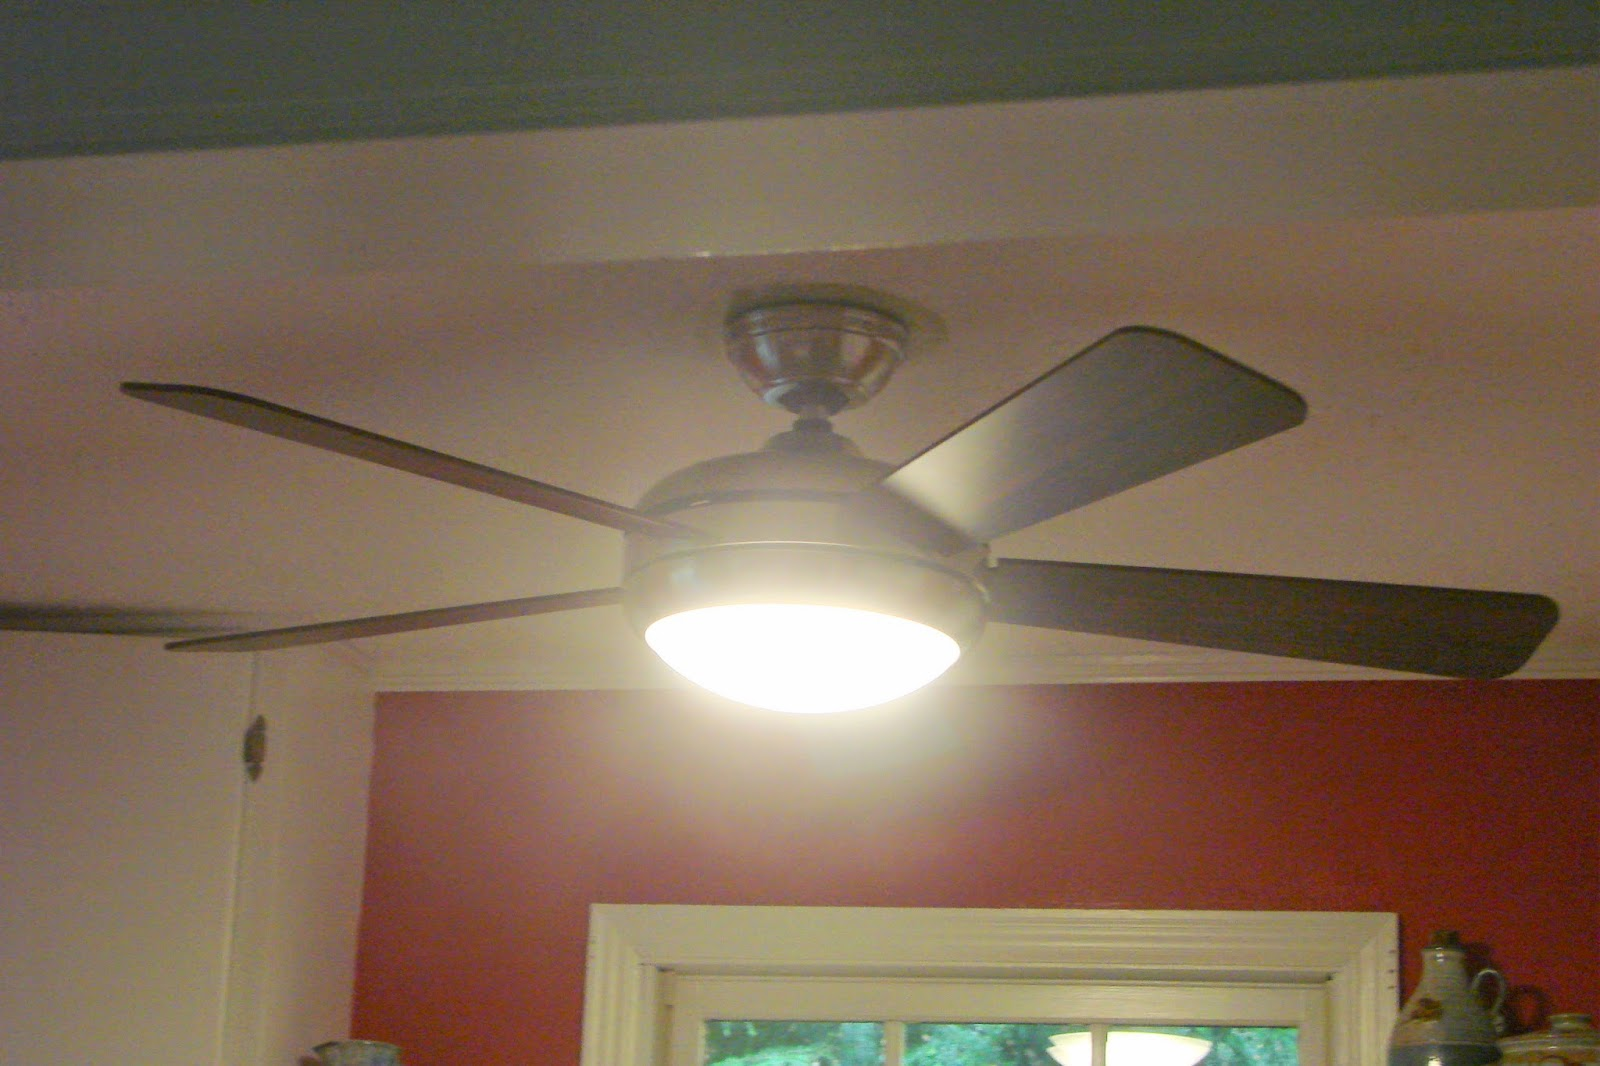 i wasnt fan kitchen fan light The kitchen to this more modern fan with an LED light fixture It looks a little like a space ship to me and operates by remote